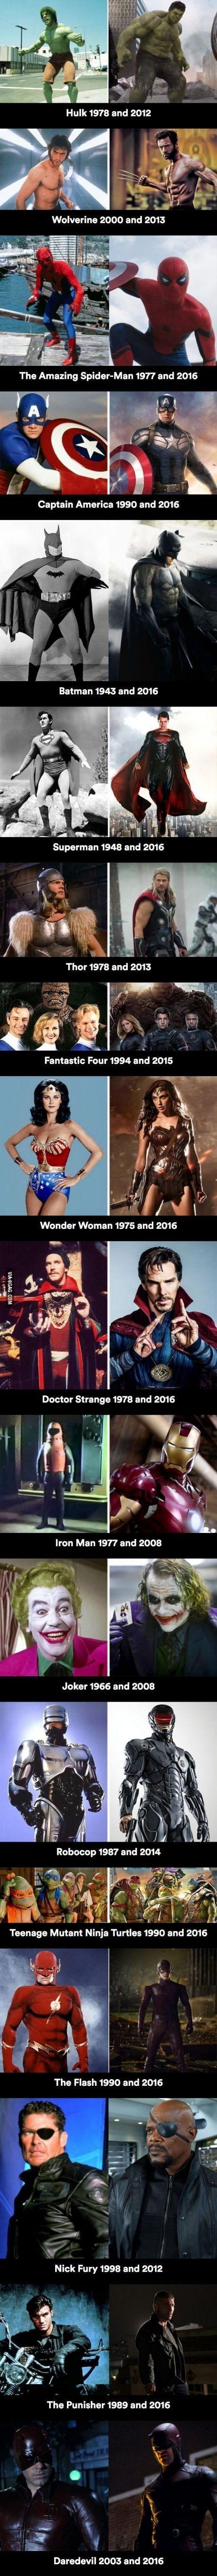 ridiculous-superhero-body-standards